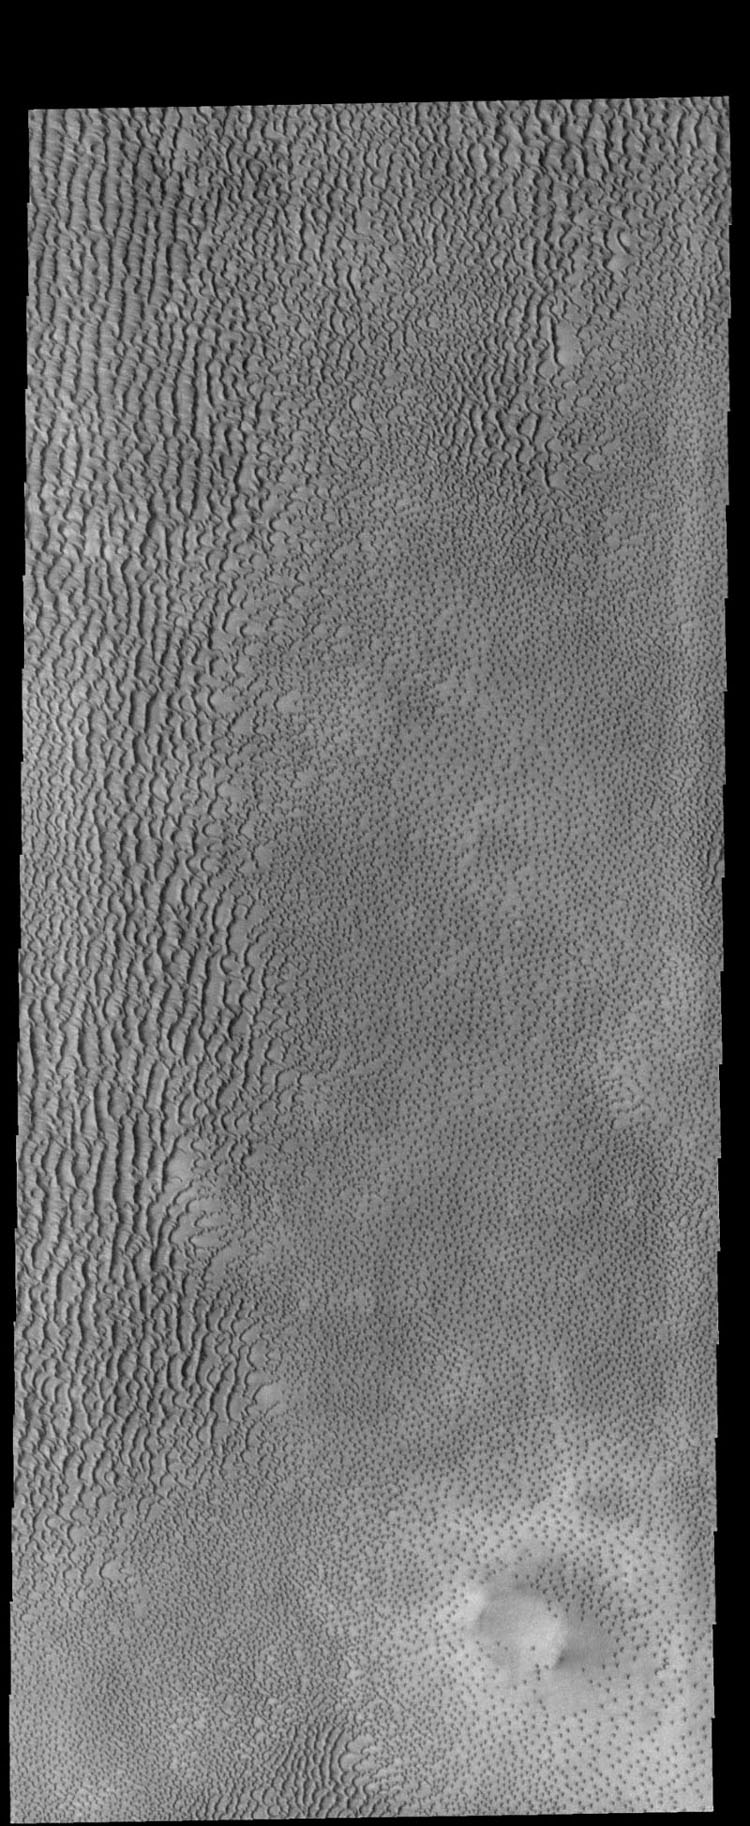 This image captured by NASA's 2001 Mars Odyssey spacecraft shows part of Aspledon Undae, a region of dunes near the north pole. The right side of the image shows hundreds of small, isolated dunes.